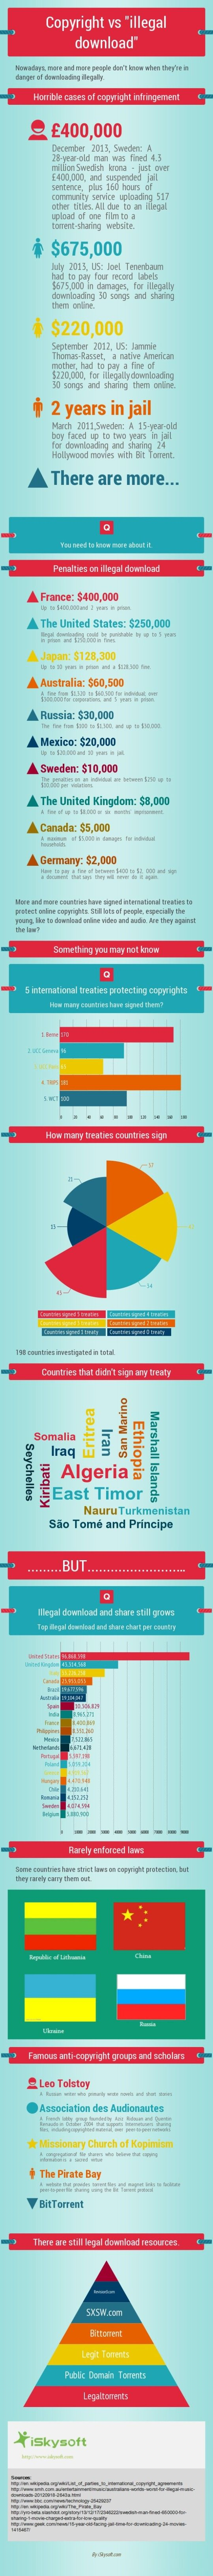 The #infographic shows not only the cases of copyright infringement, but also penalties in particular countries, and illegal download & share numbers.